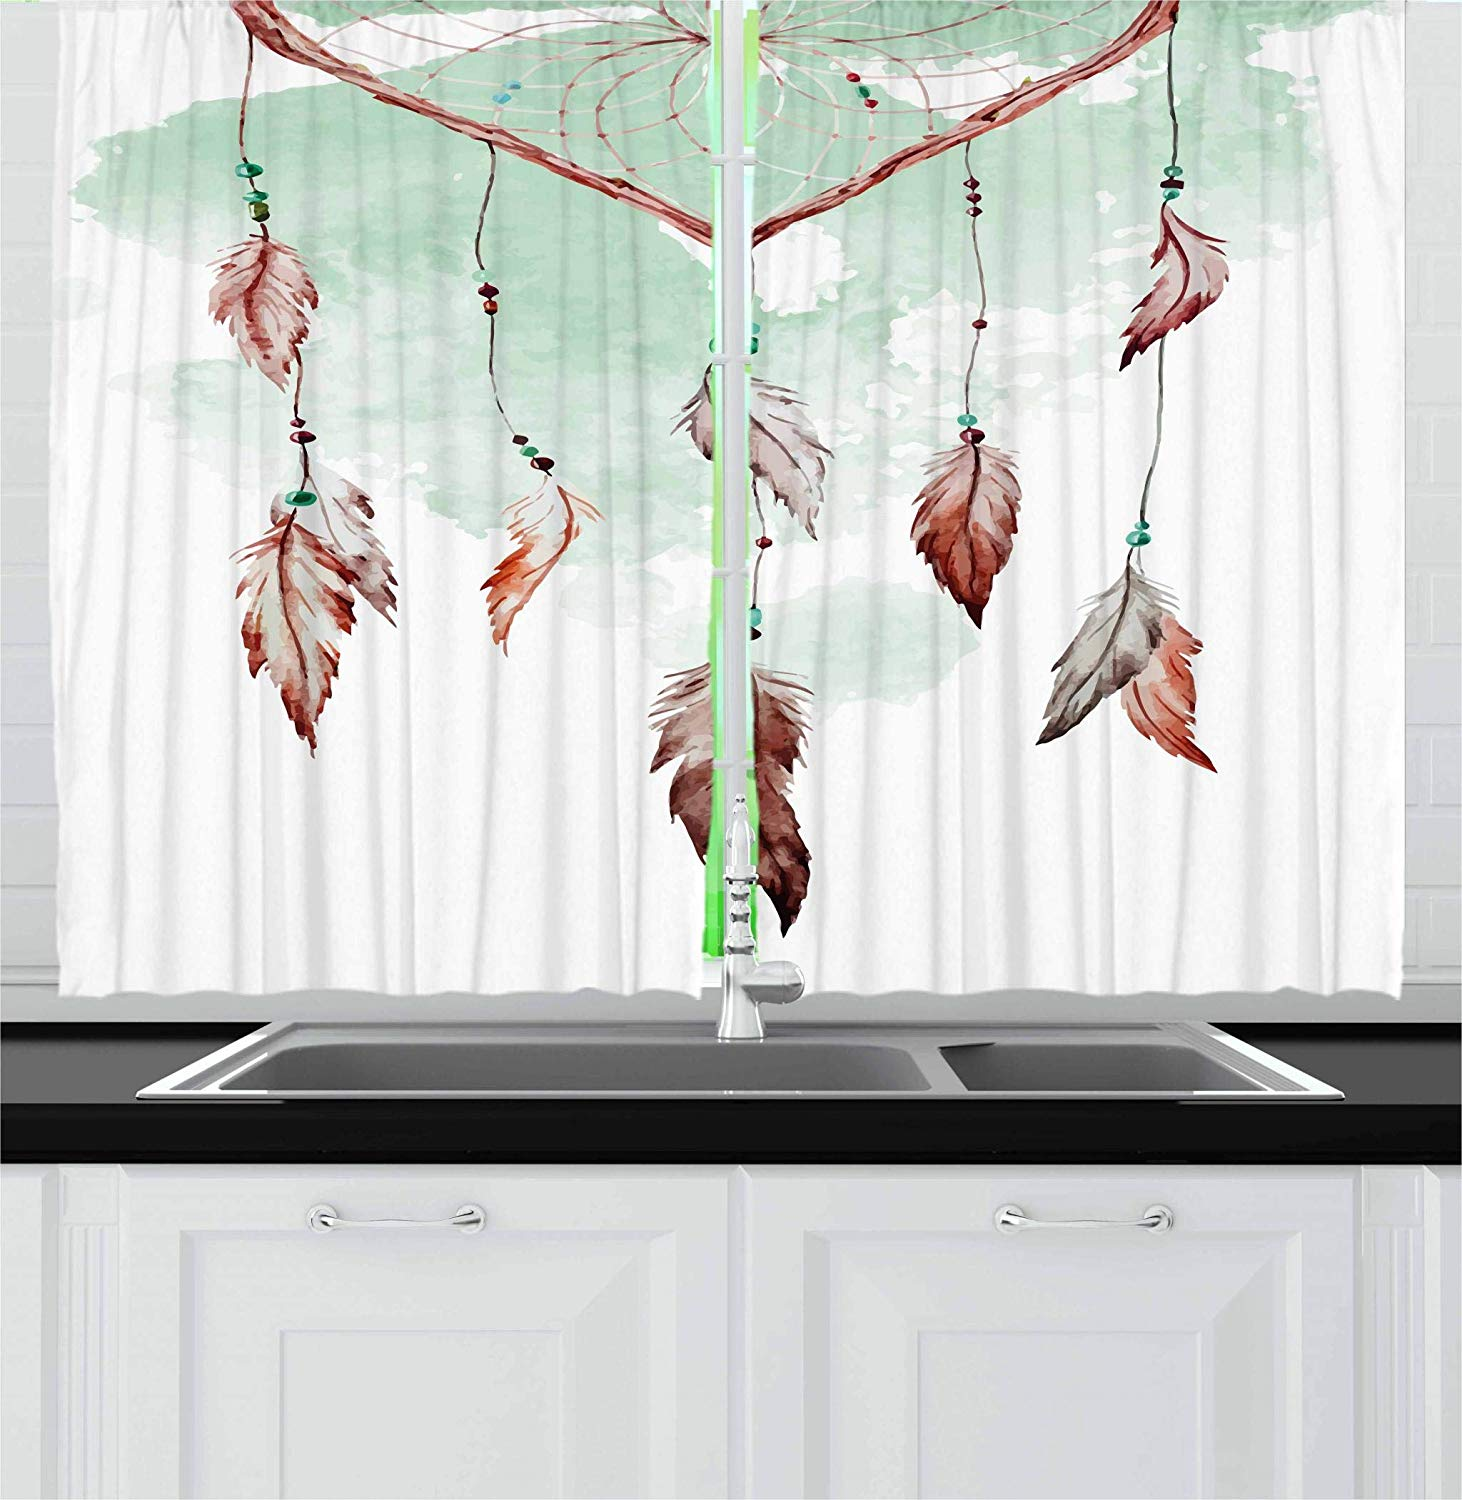 Traditional Curtains Us 13 62 35 Off Aliexpress Buy Feather Curtains Watercolor Vibrant Dream Catcher With Ornamental Elements Traditional Design Window Drapes For